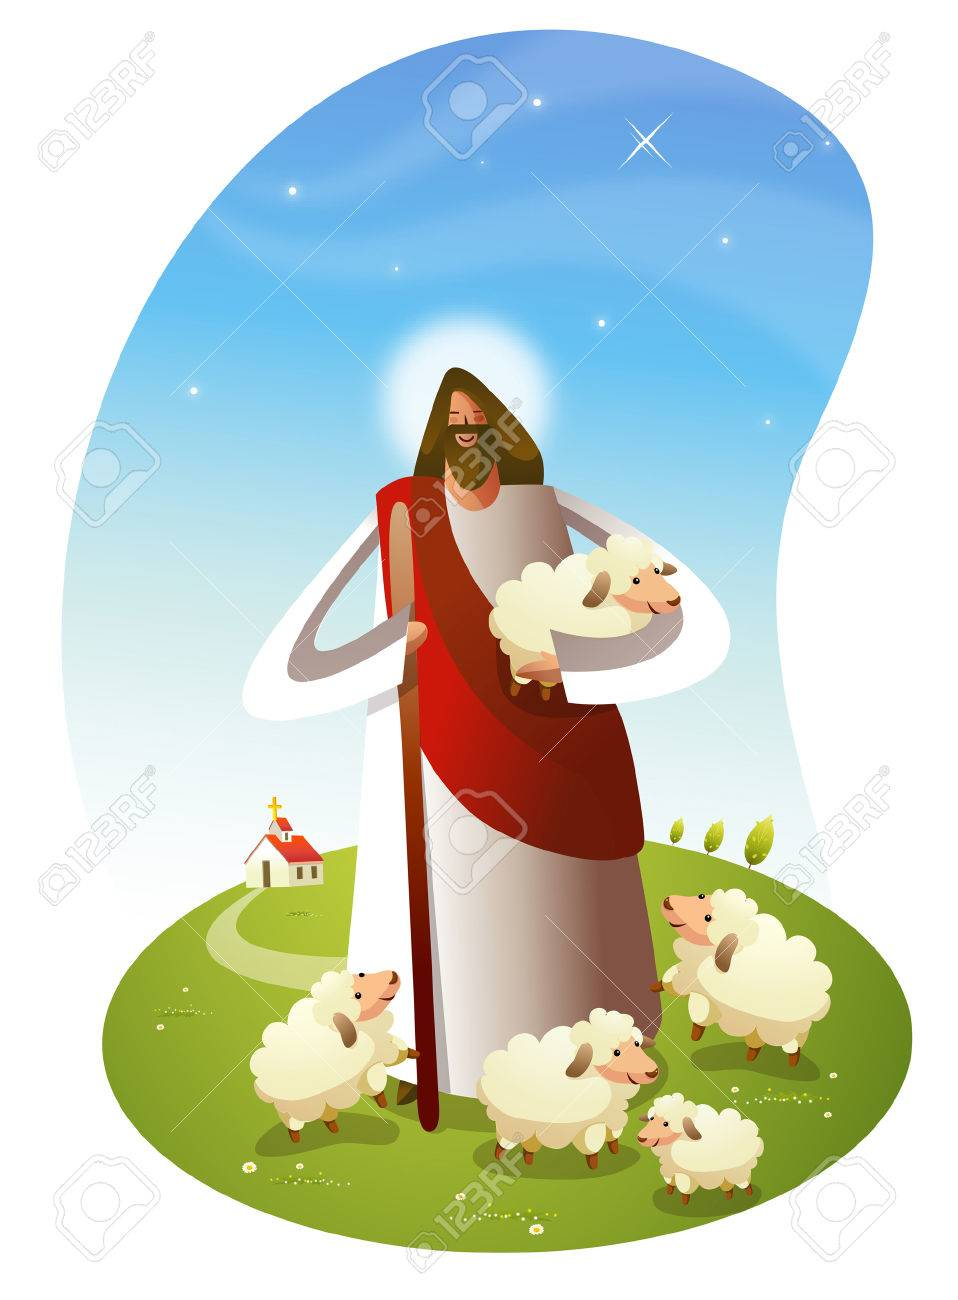 hight resolution of jesus christ standing with sheep stock vector 78587751